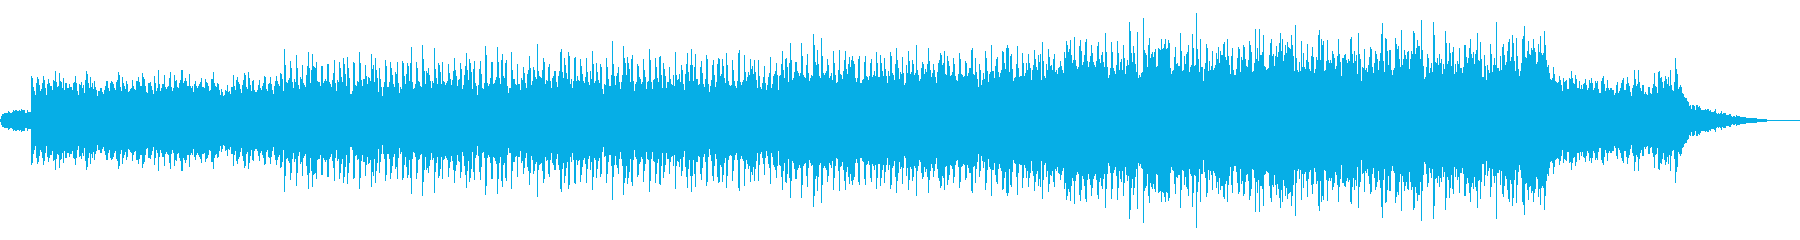 Brave Orchestra Simple Short's reproduced waveform